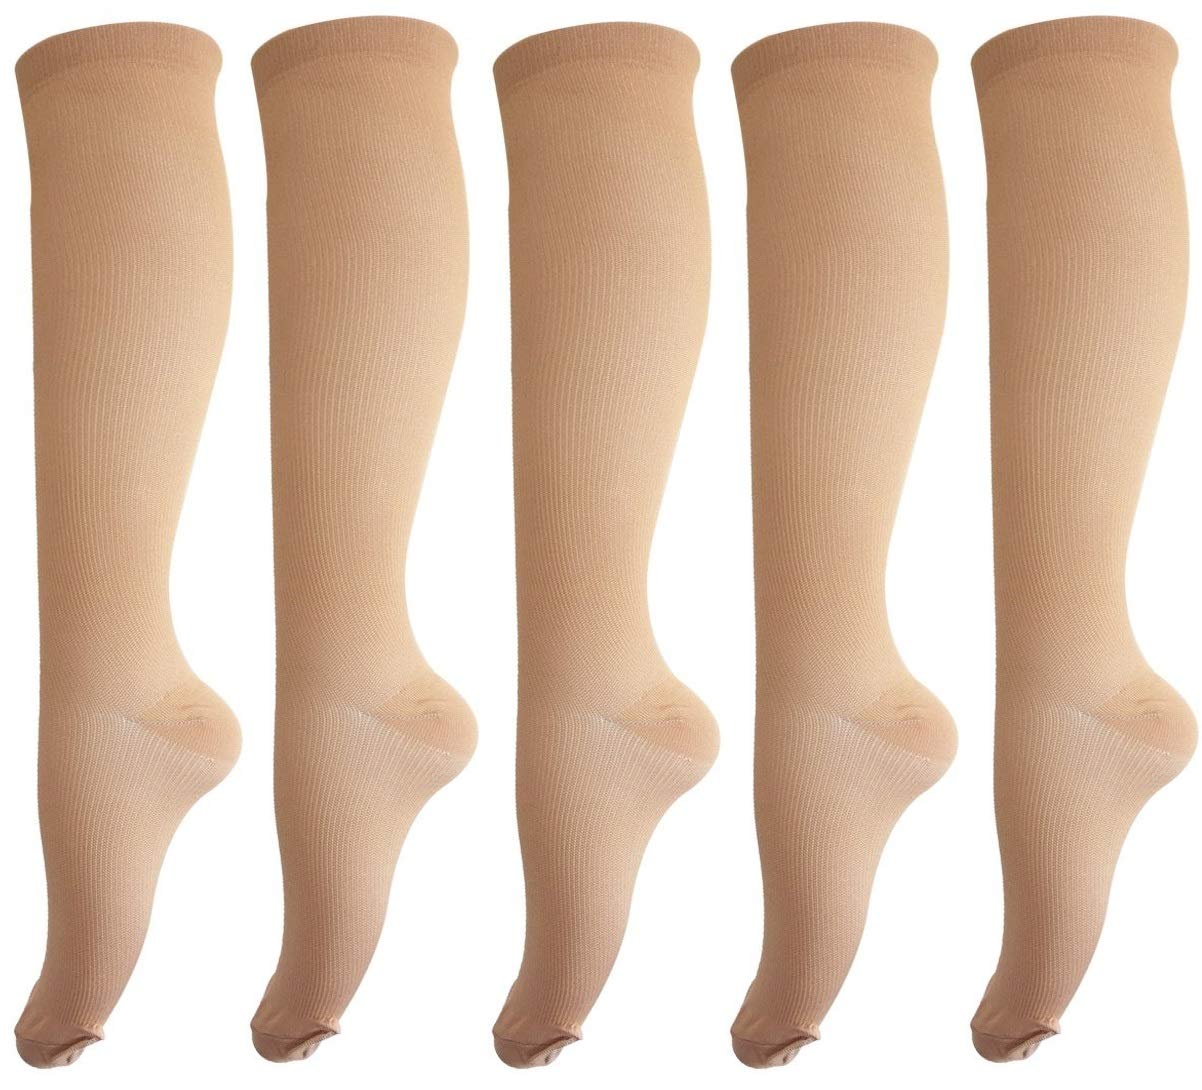 Mother & Kids Girls' Clothing Independent 2019 New Arrival New Stocking Varicose Vein Circulation Compression Women Girl Elastic Stocking Sports Leg Support Wholesale Hot Buy Now